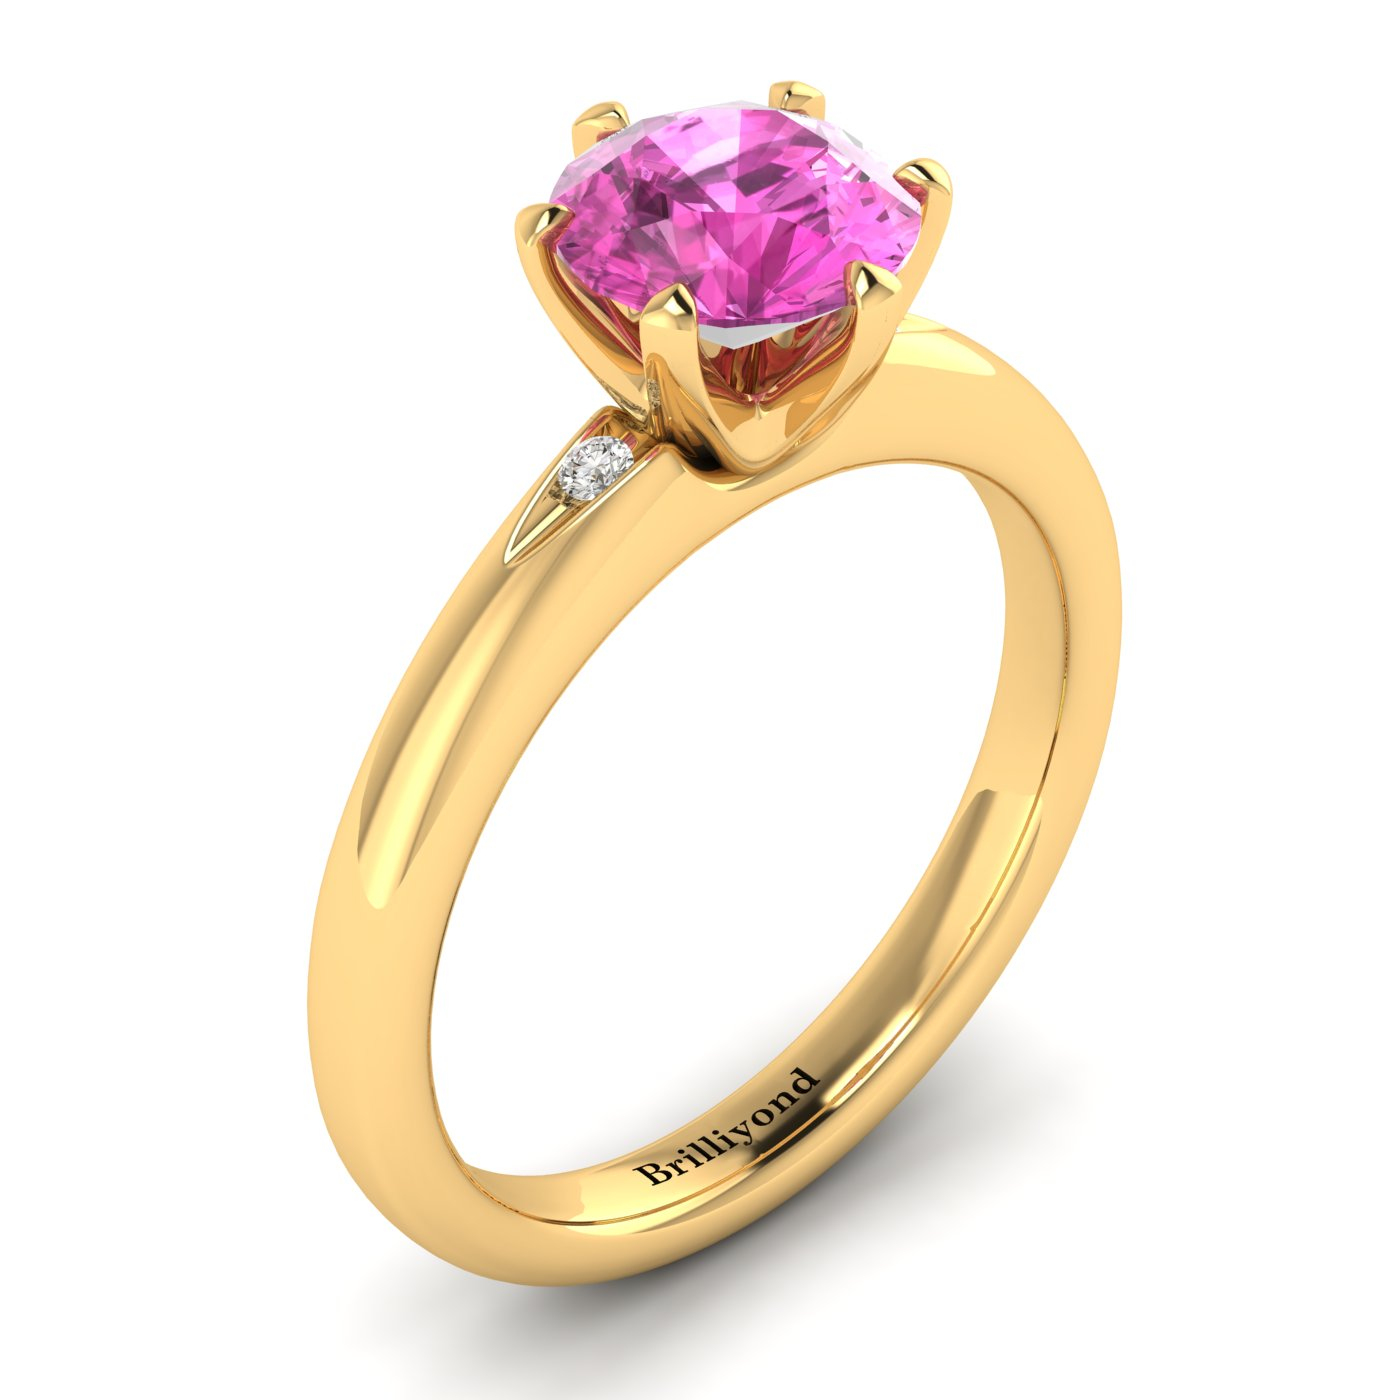 Pink Sapphire Yellow Gold Solitaire Engagement Ring Byond_image1